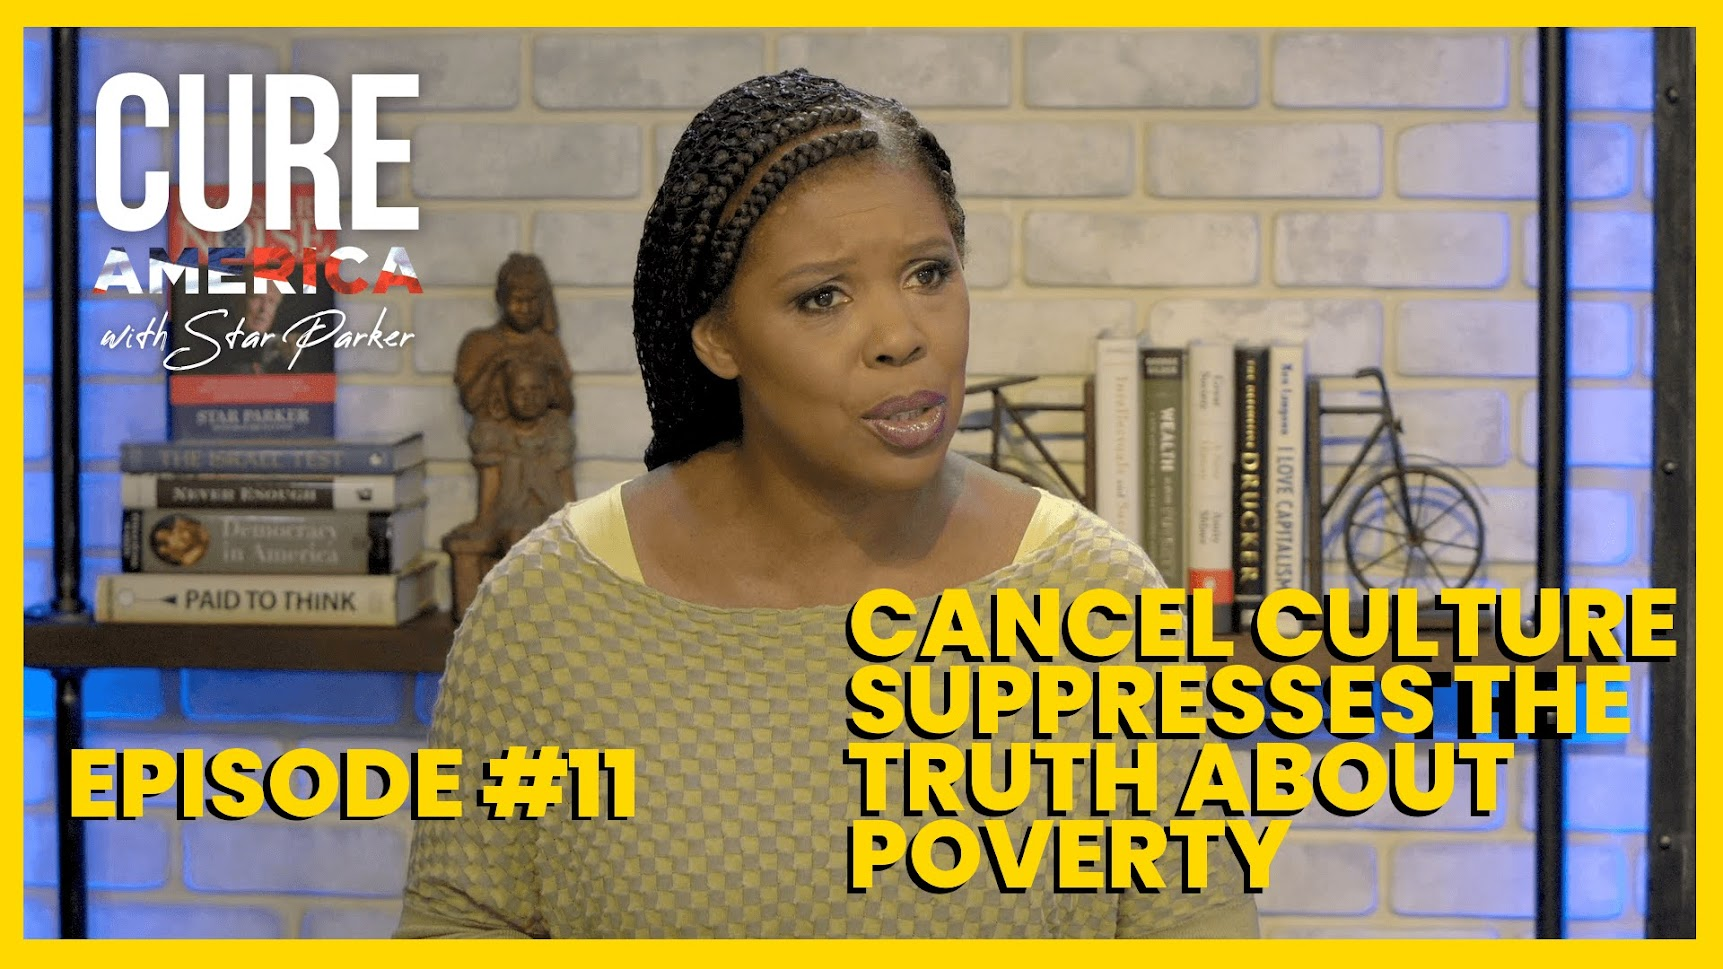 Cancel Culture Suppresses the Truth about Poverty